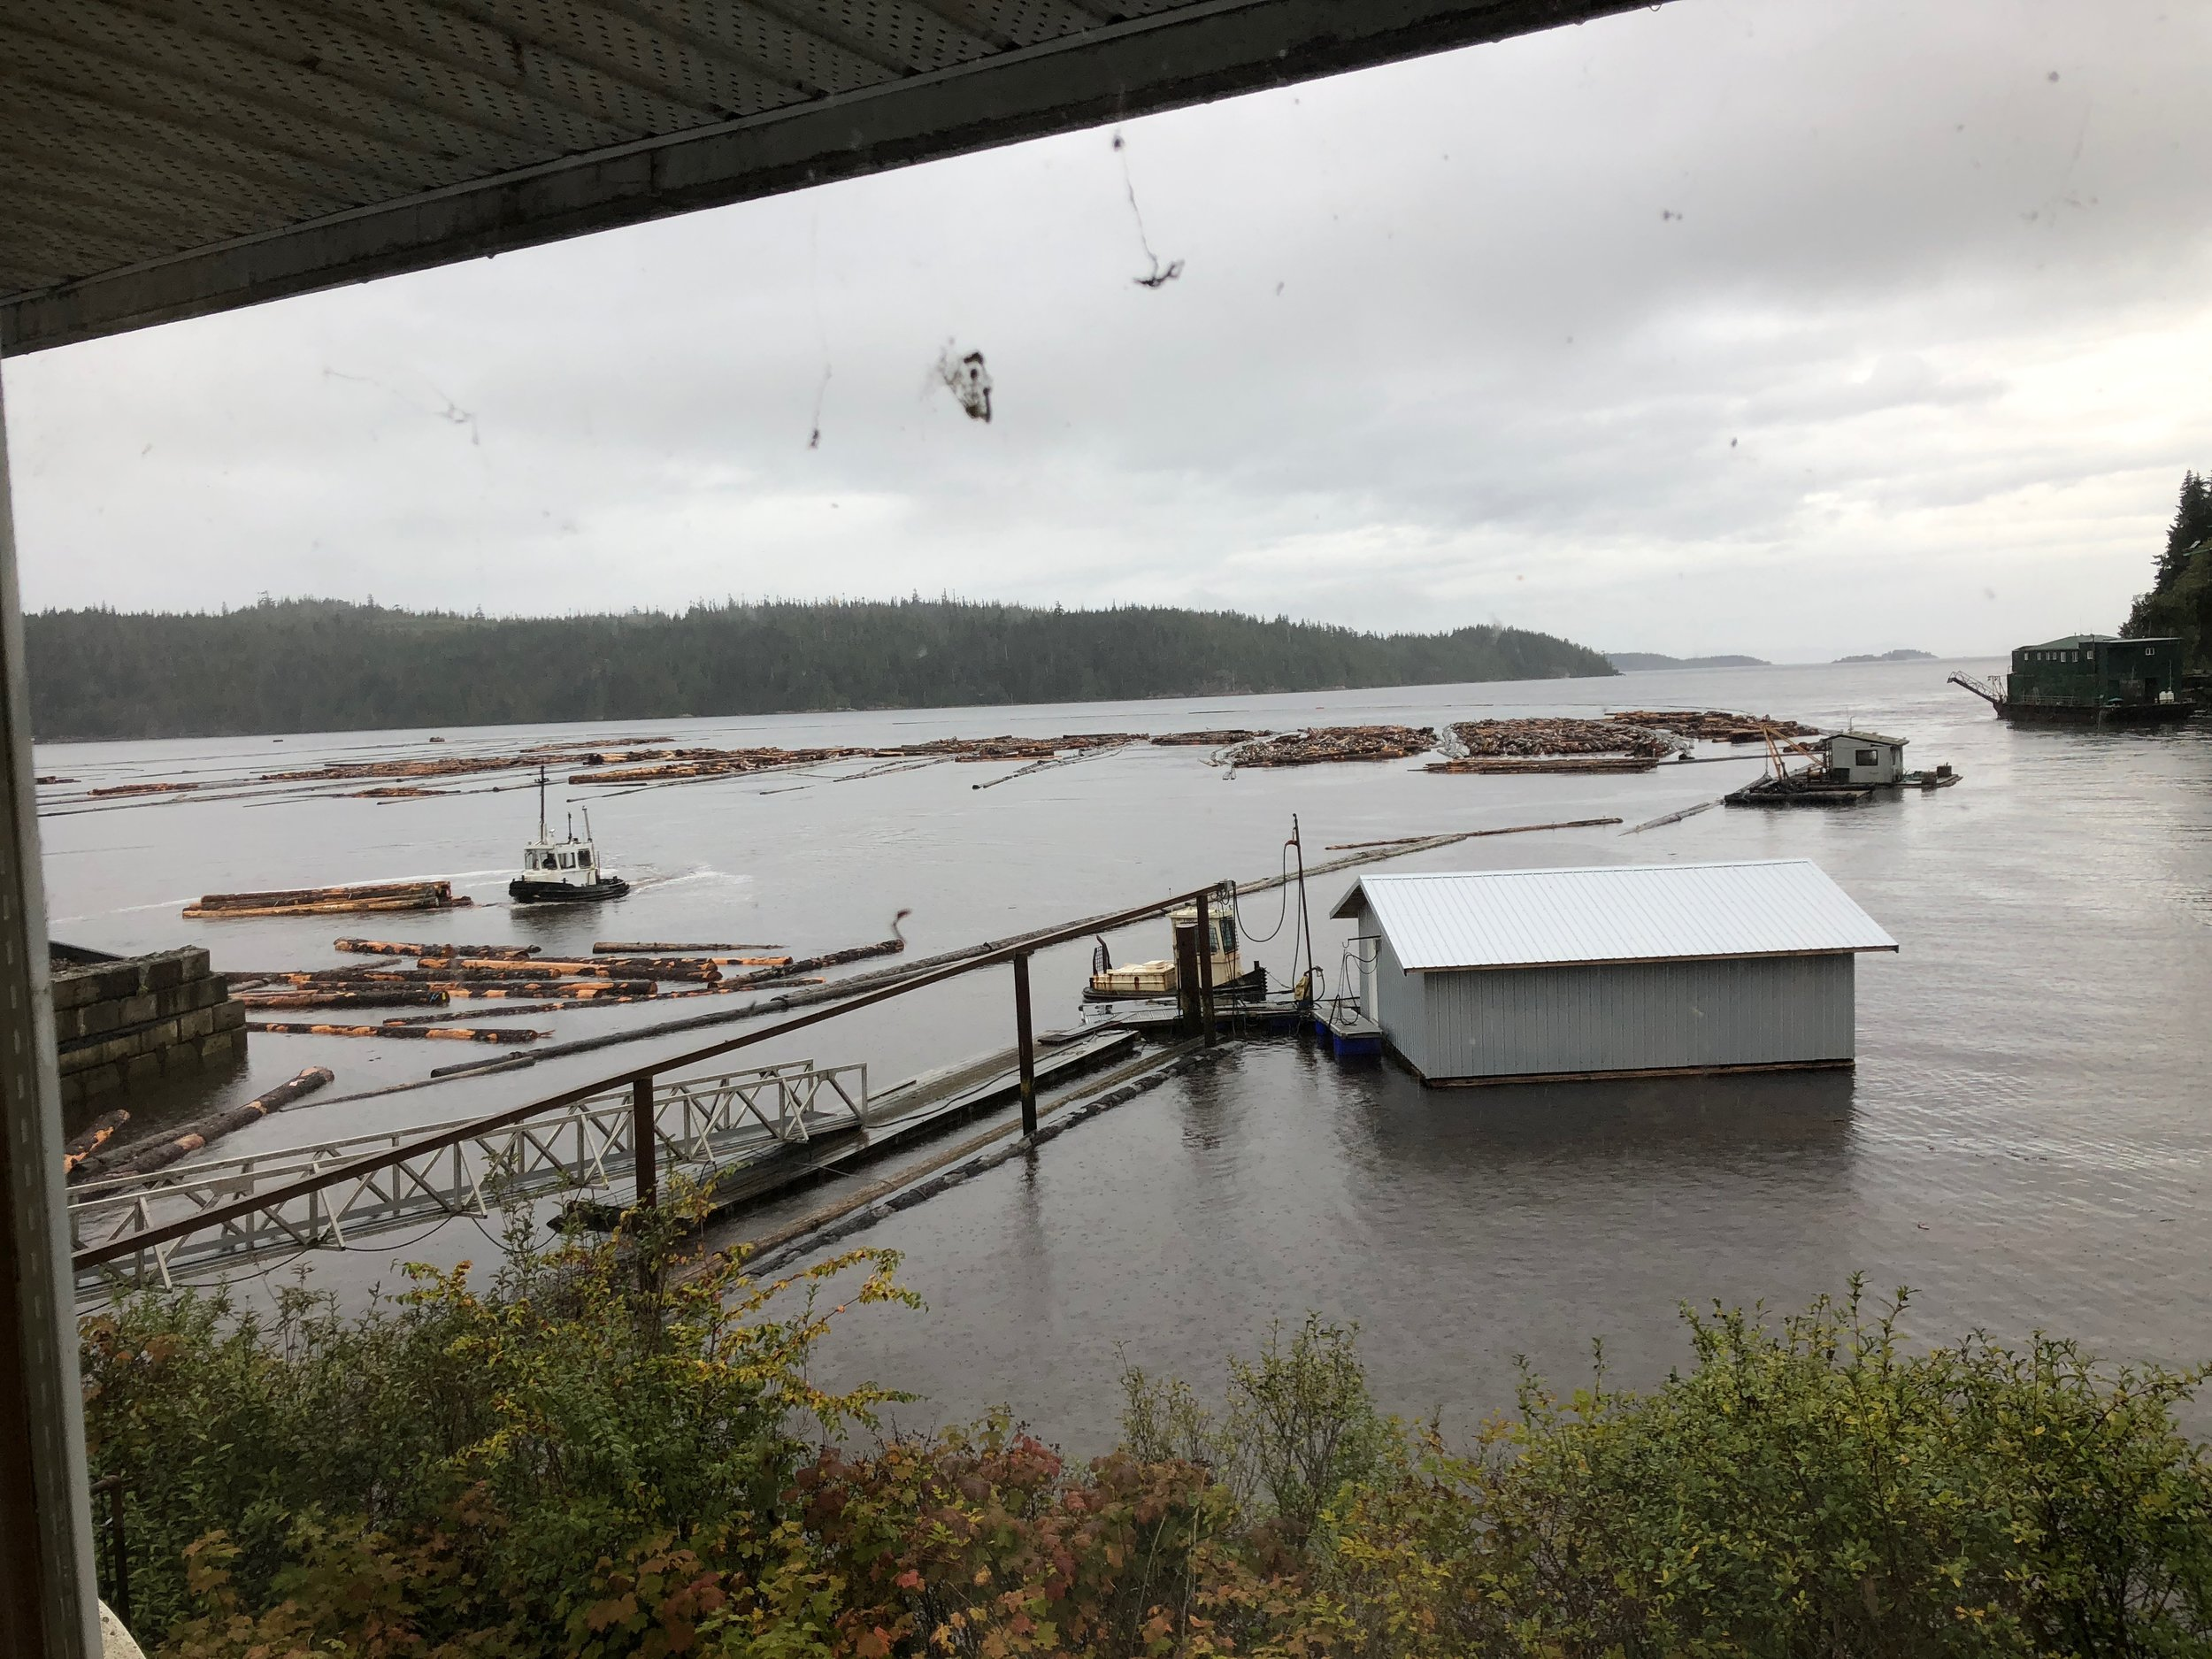 """The tugboat then pushes and places the logs into the holding sections for """"pick up"""". But the logs actually don't get picked up, but dragged through the water to their final destination"""